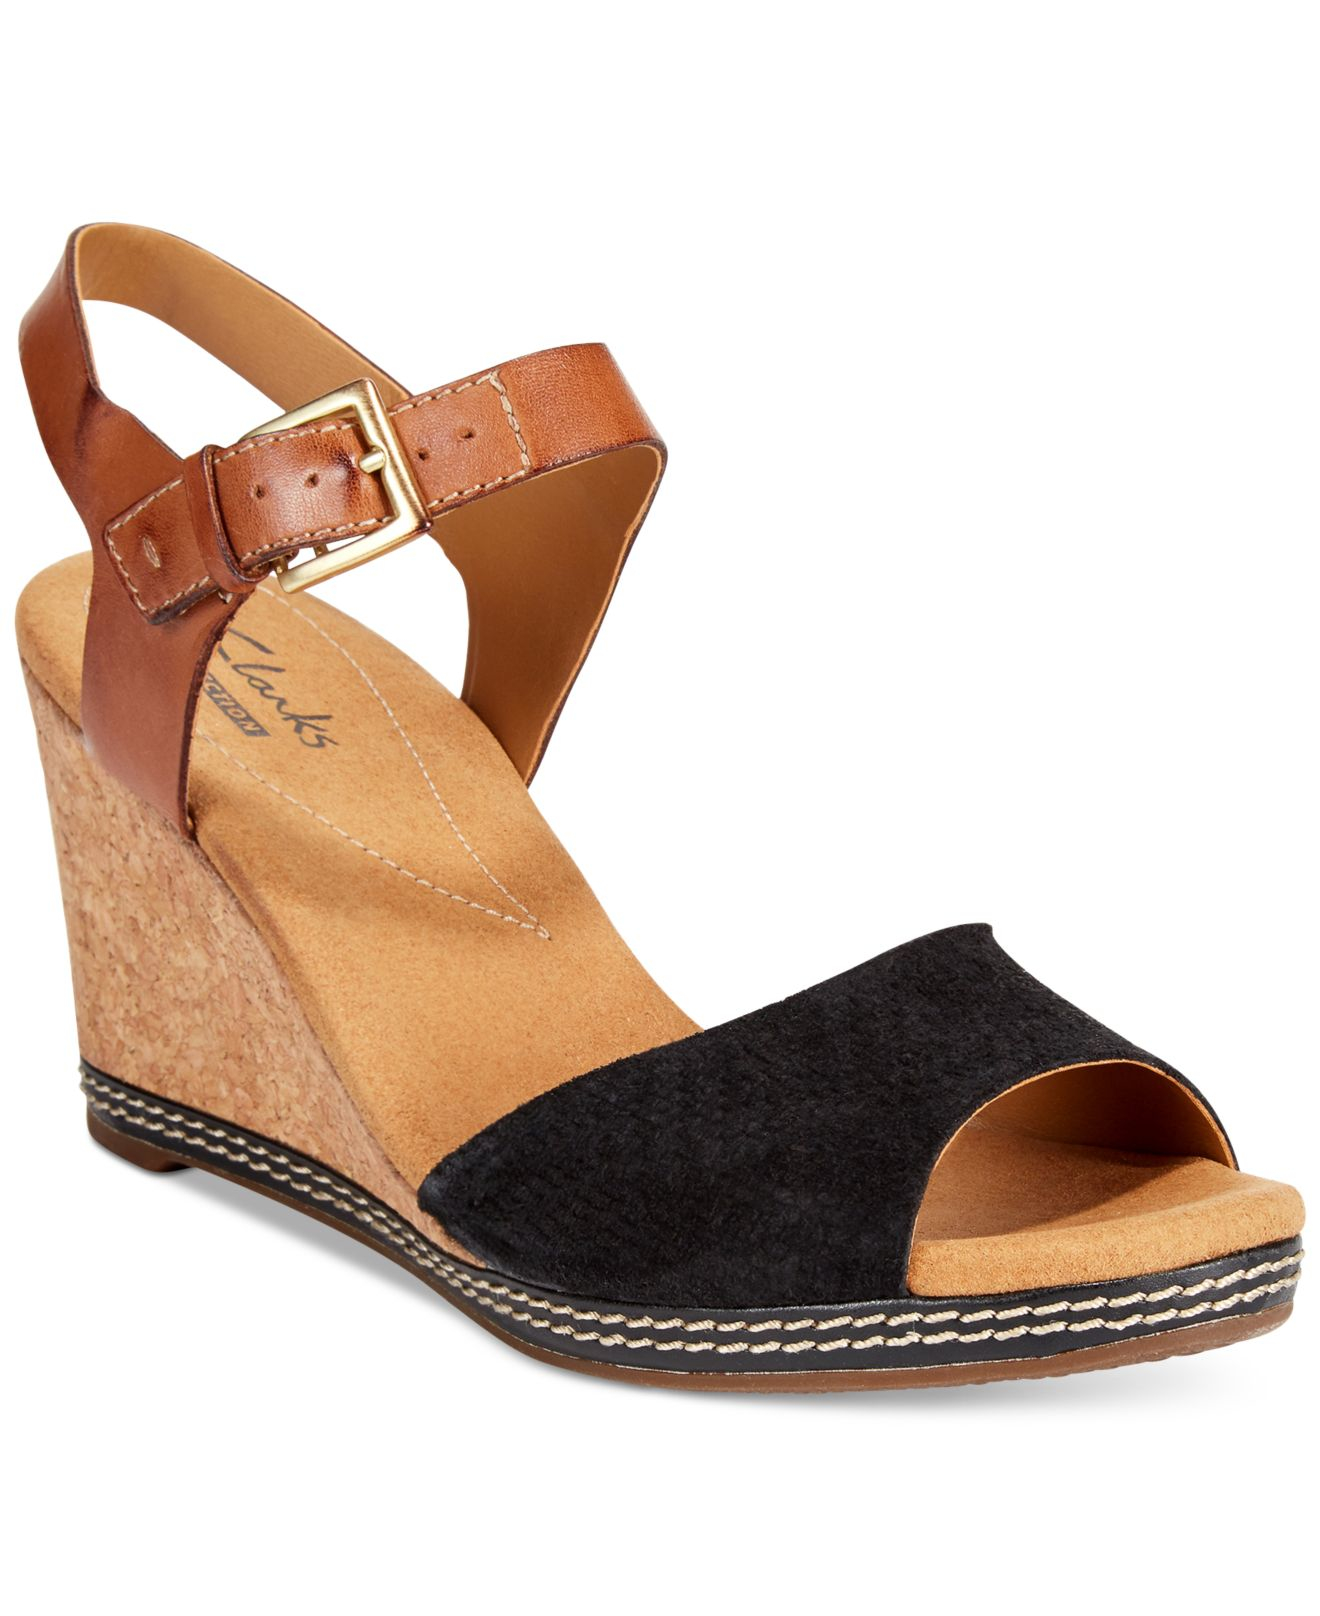 Original Closeouts Add Bohoinspired Style To Your Red Hot Summer Nights With Clarks Annadel Fareda Wedge Sandals! The Soft, Wide Nubuck Straps Crisscross For Visual Interest Atop The Cork Platform And Wedge Heel, And In Between, An